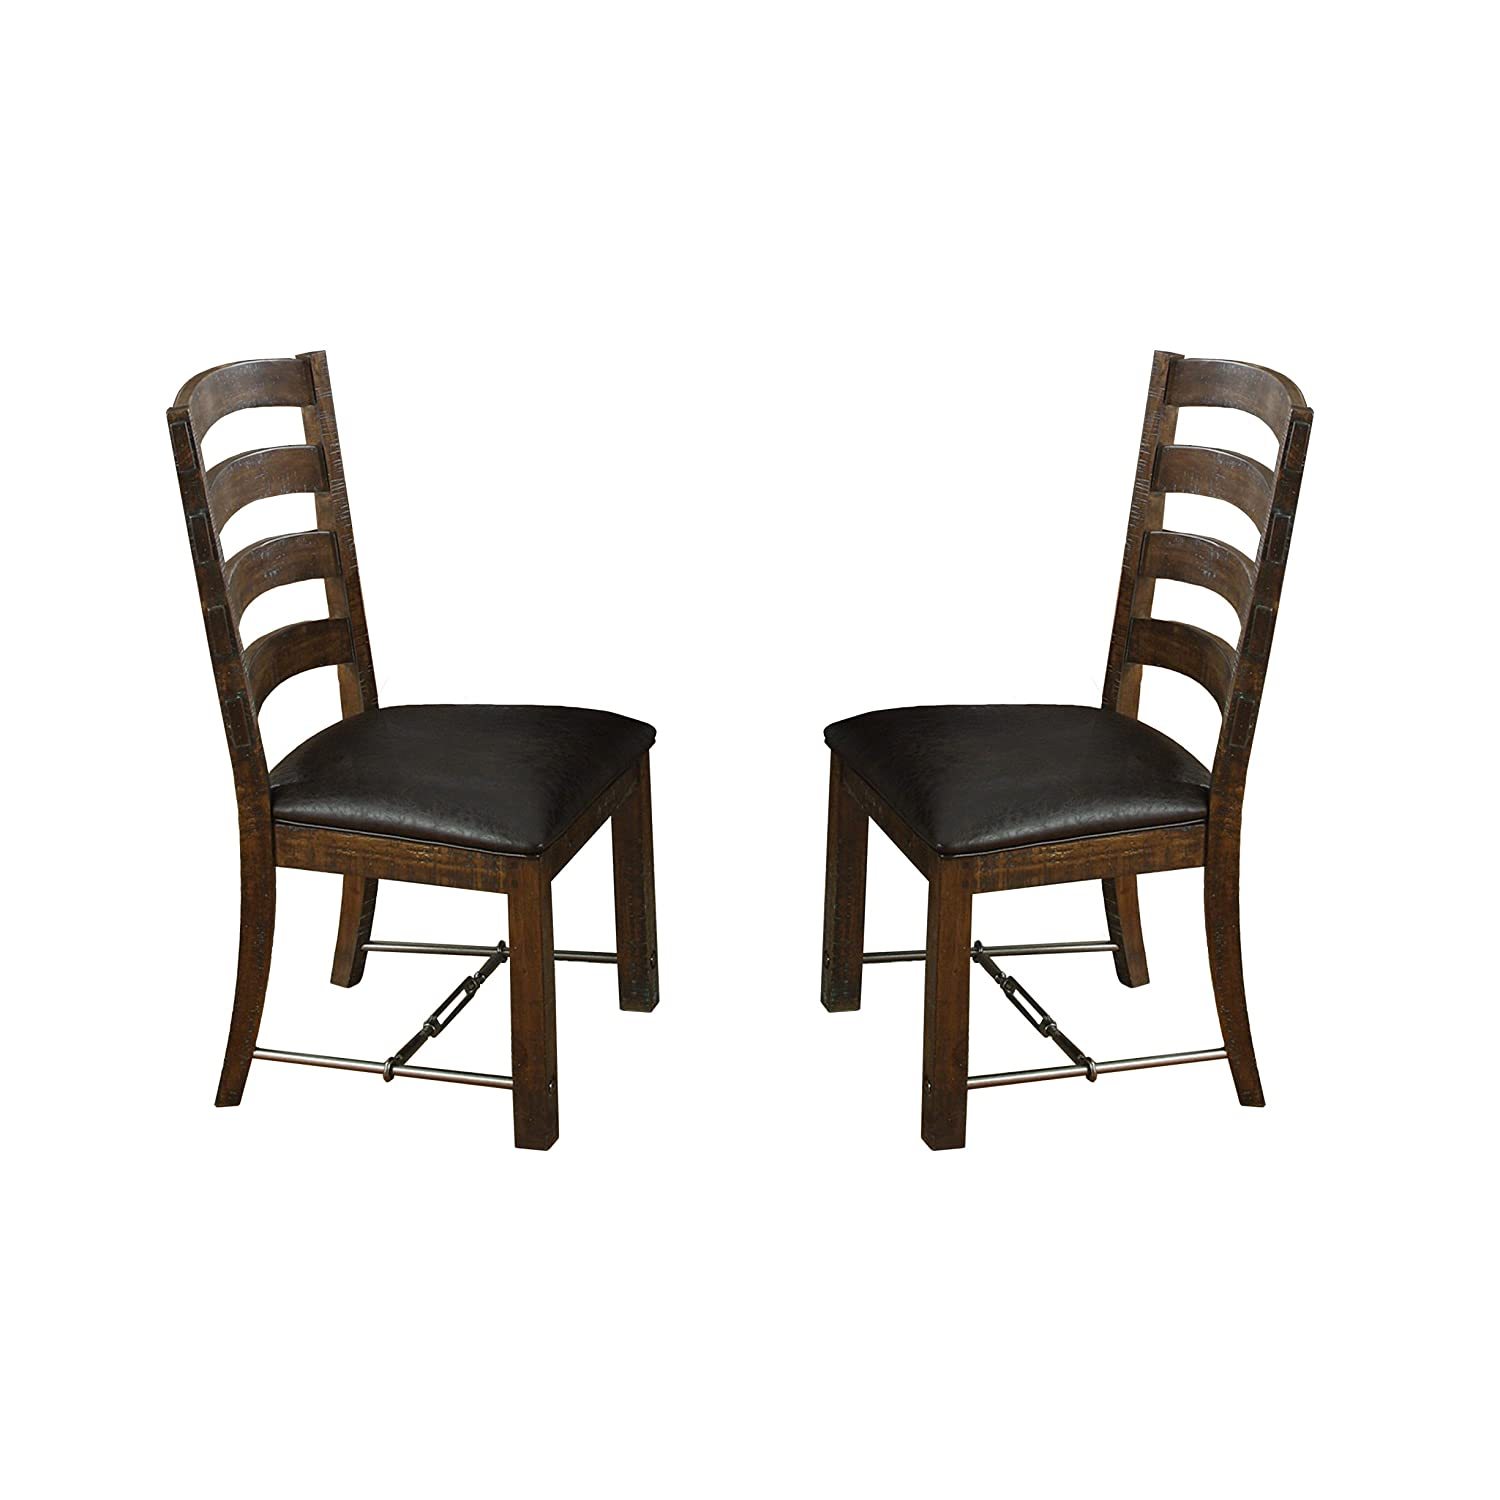 Emerald Home Castlegate Pine Brown Dining Chair with Upholstered Faux Leather Seat, Ladder Back, And Turnbuckle Bracing, Set of Two